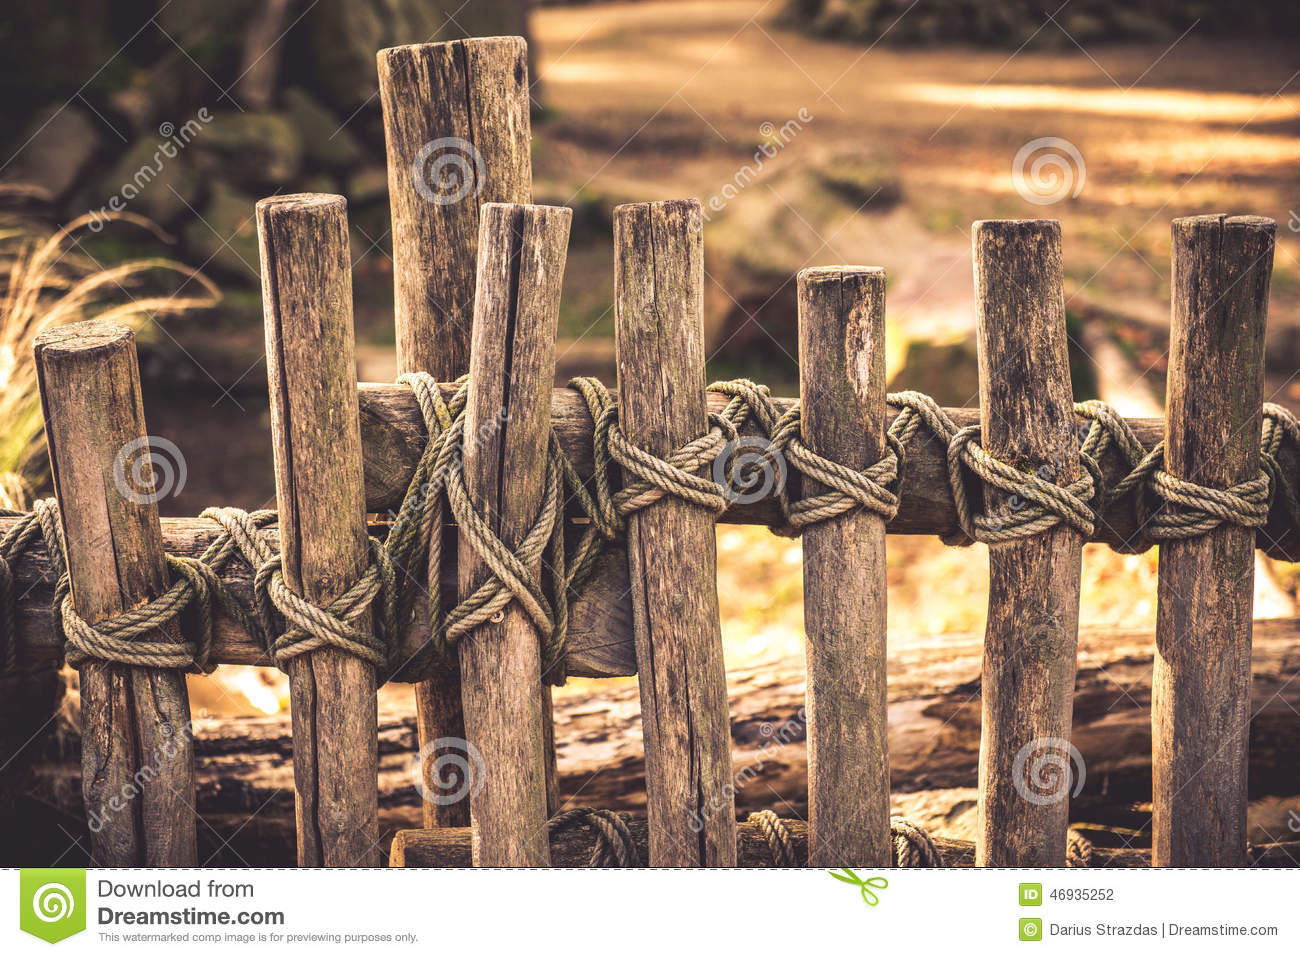 Rope tied around a wooden fence pole shallow dof stock photos more similar stock images of rope tied around a wooden fence pole shallow dof baanklon Image collections